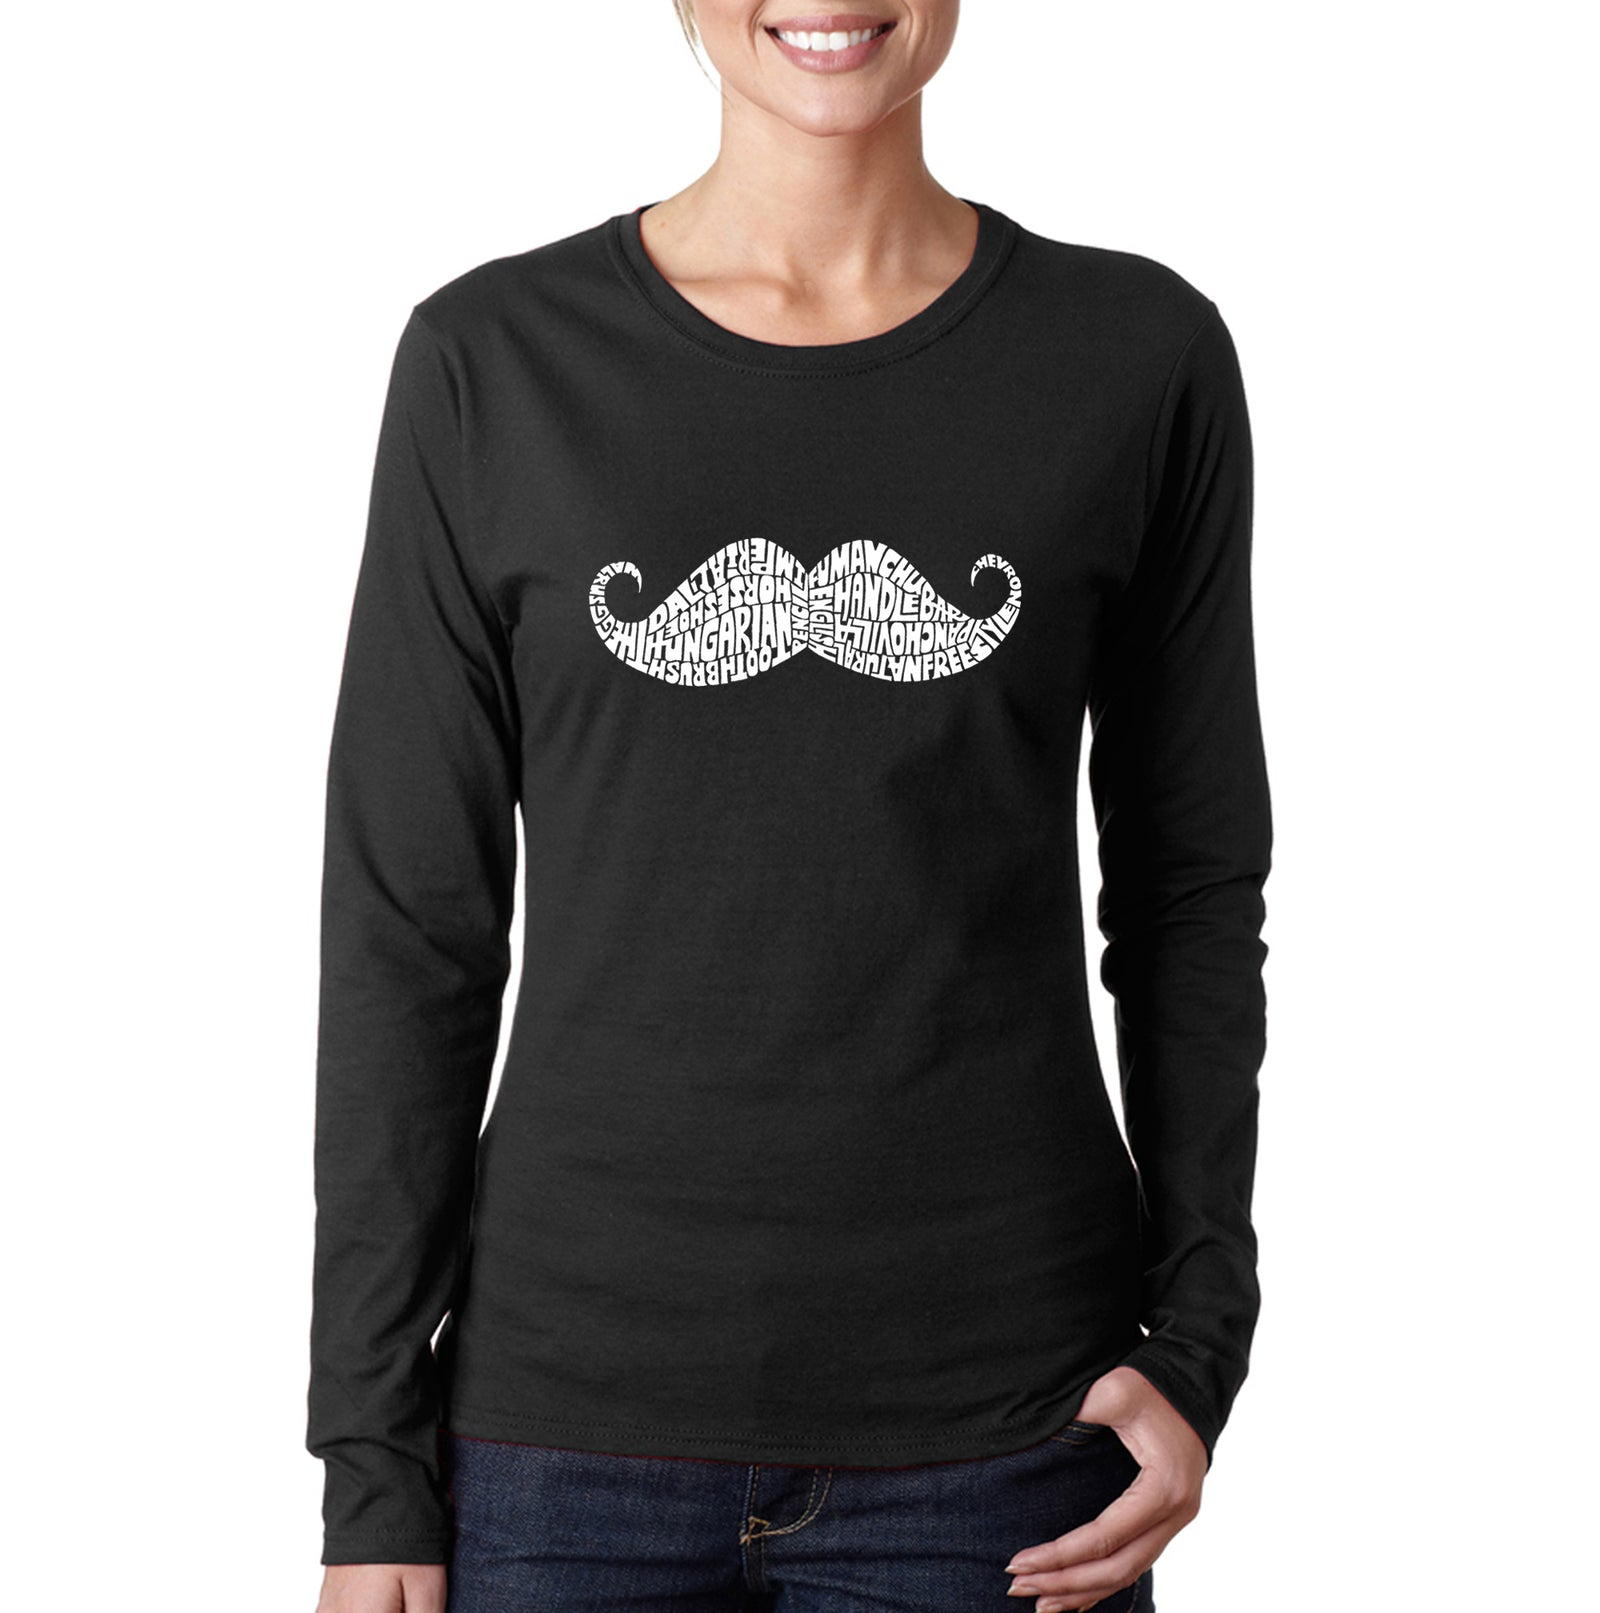 Women's Long Sleeve T-Shirt - WAYS TO STYLE A MOUSTACHE